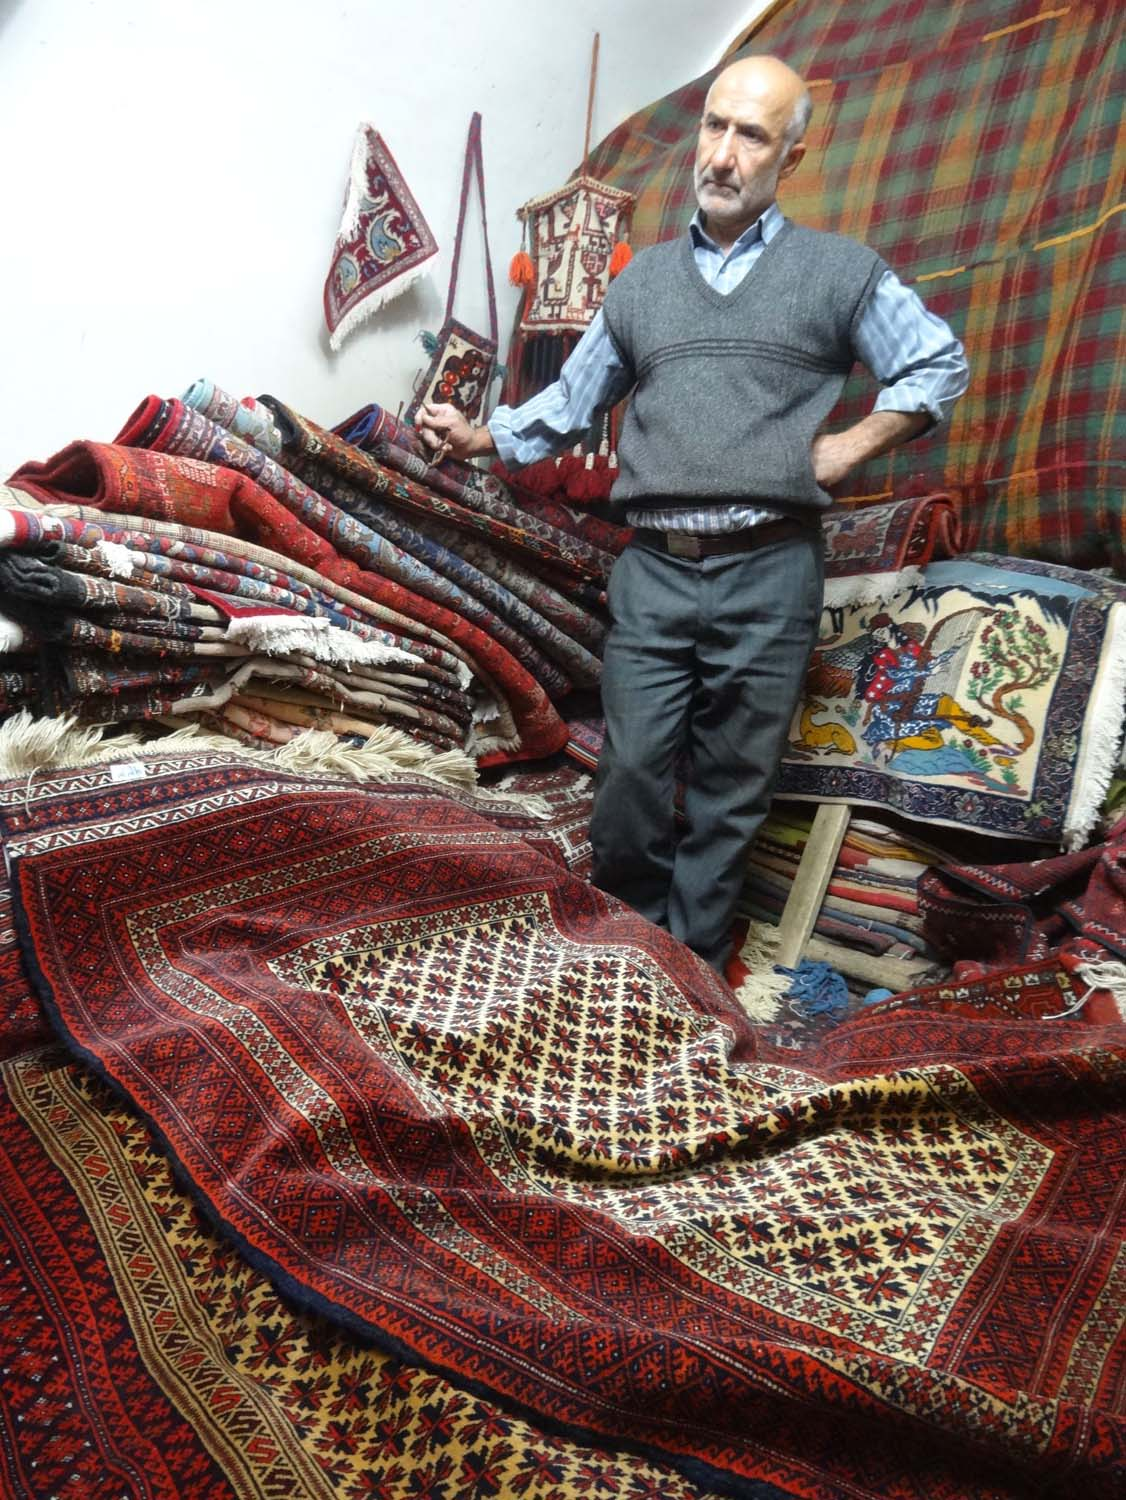 the carpet salesman shows his stuff